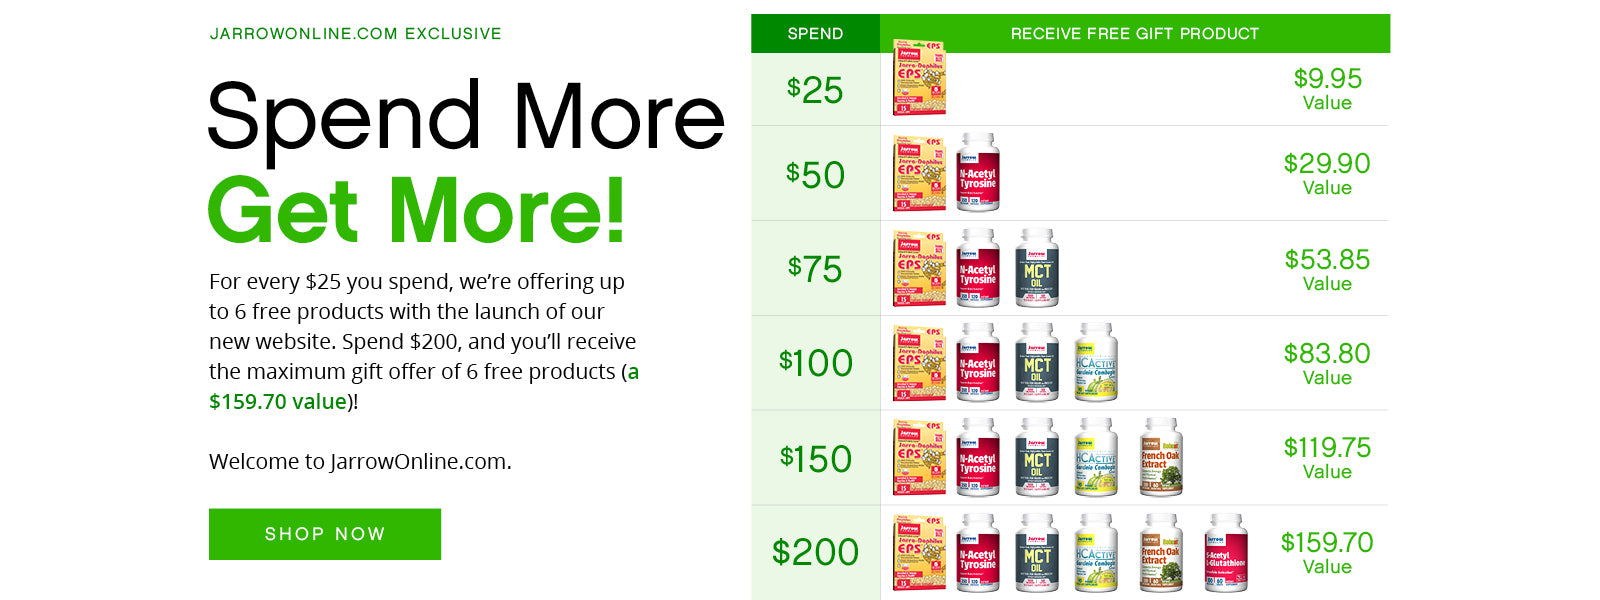 Spend More Get More! For every $25 you spend, we're offering up to 6 free products with the launch of our new website. Spend $200, and you'll receive the maximum gift offer of 6 free products.